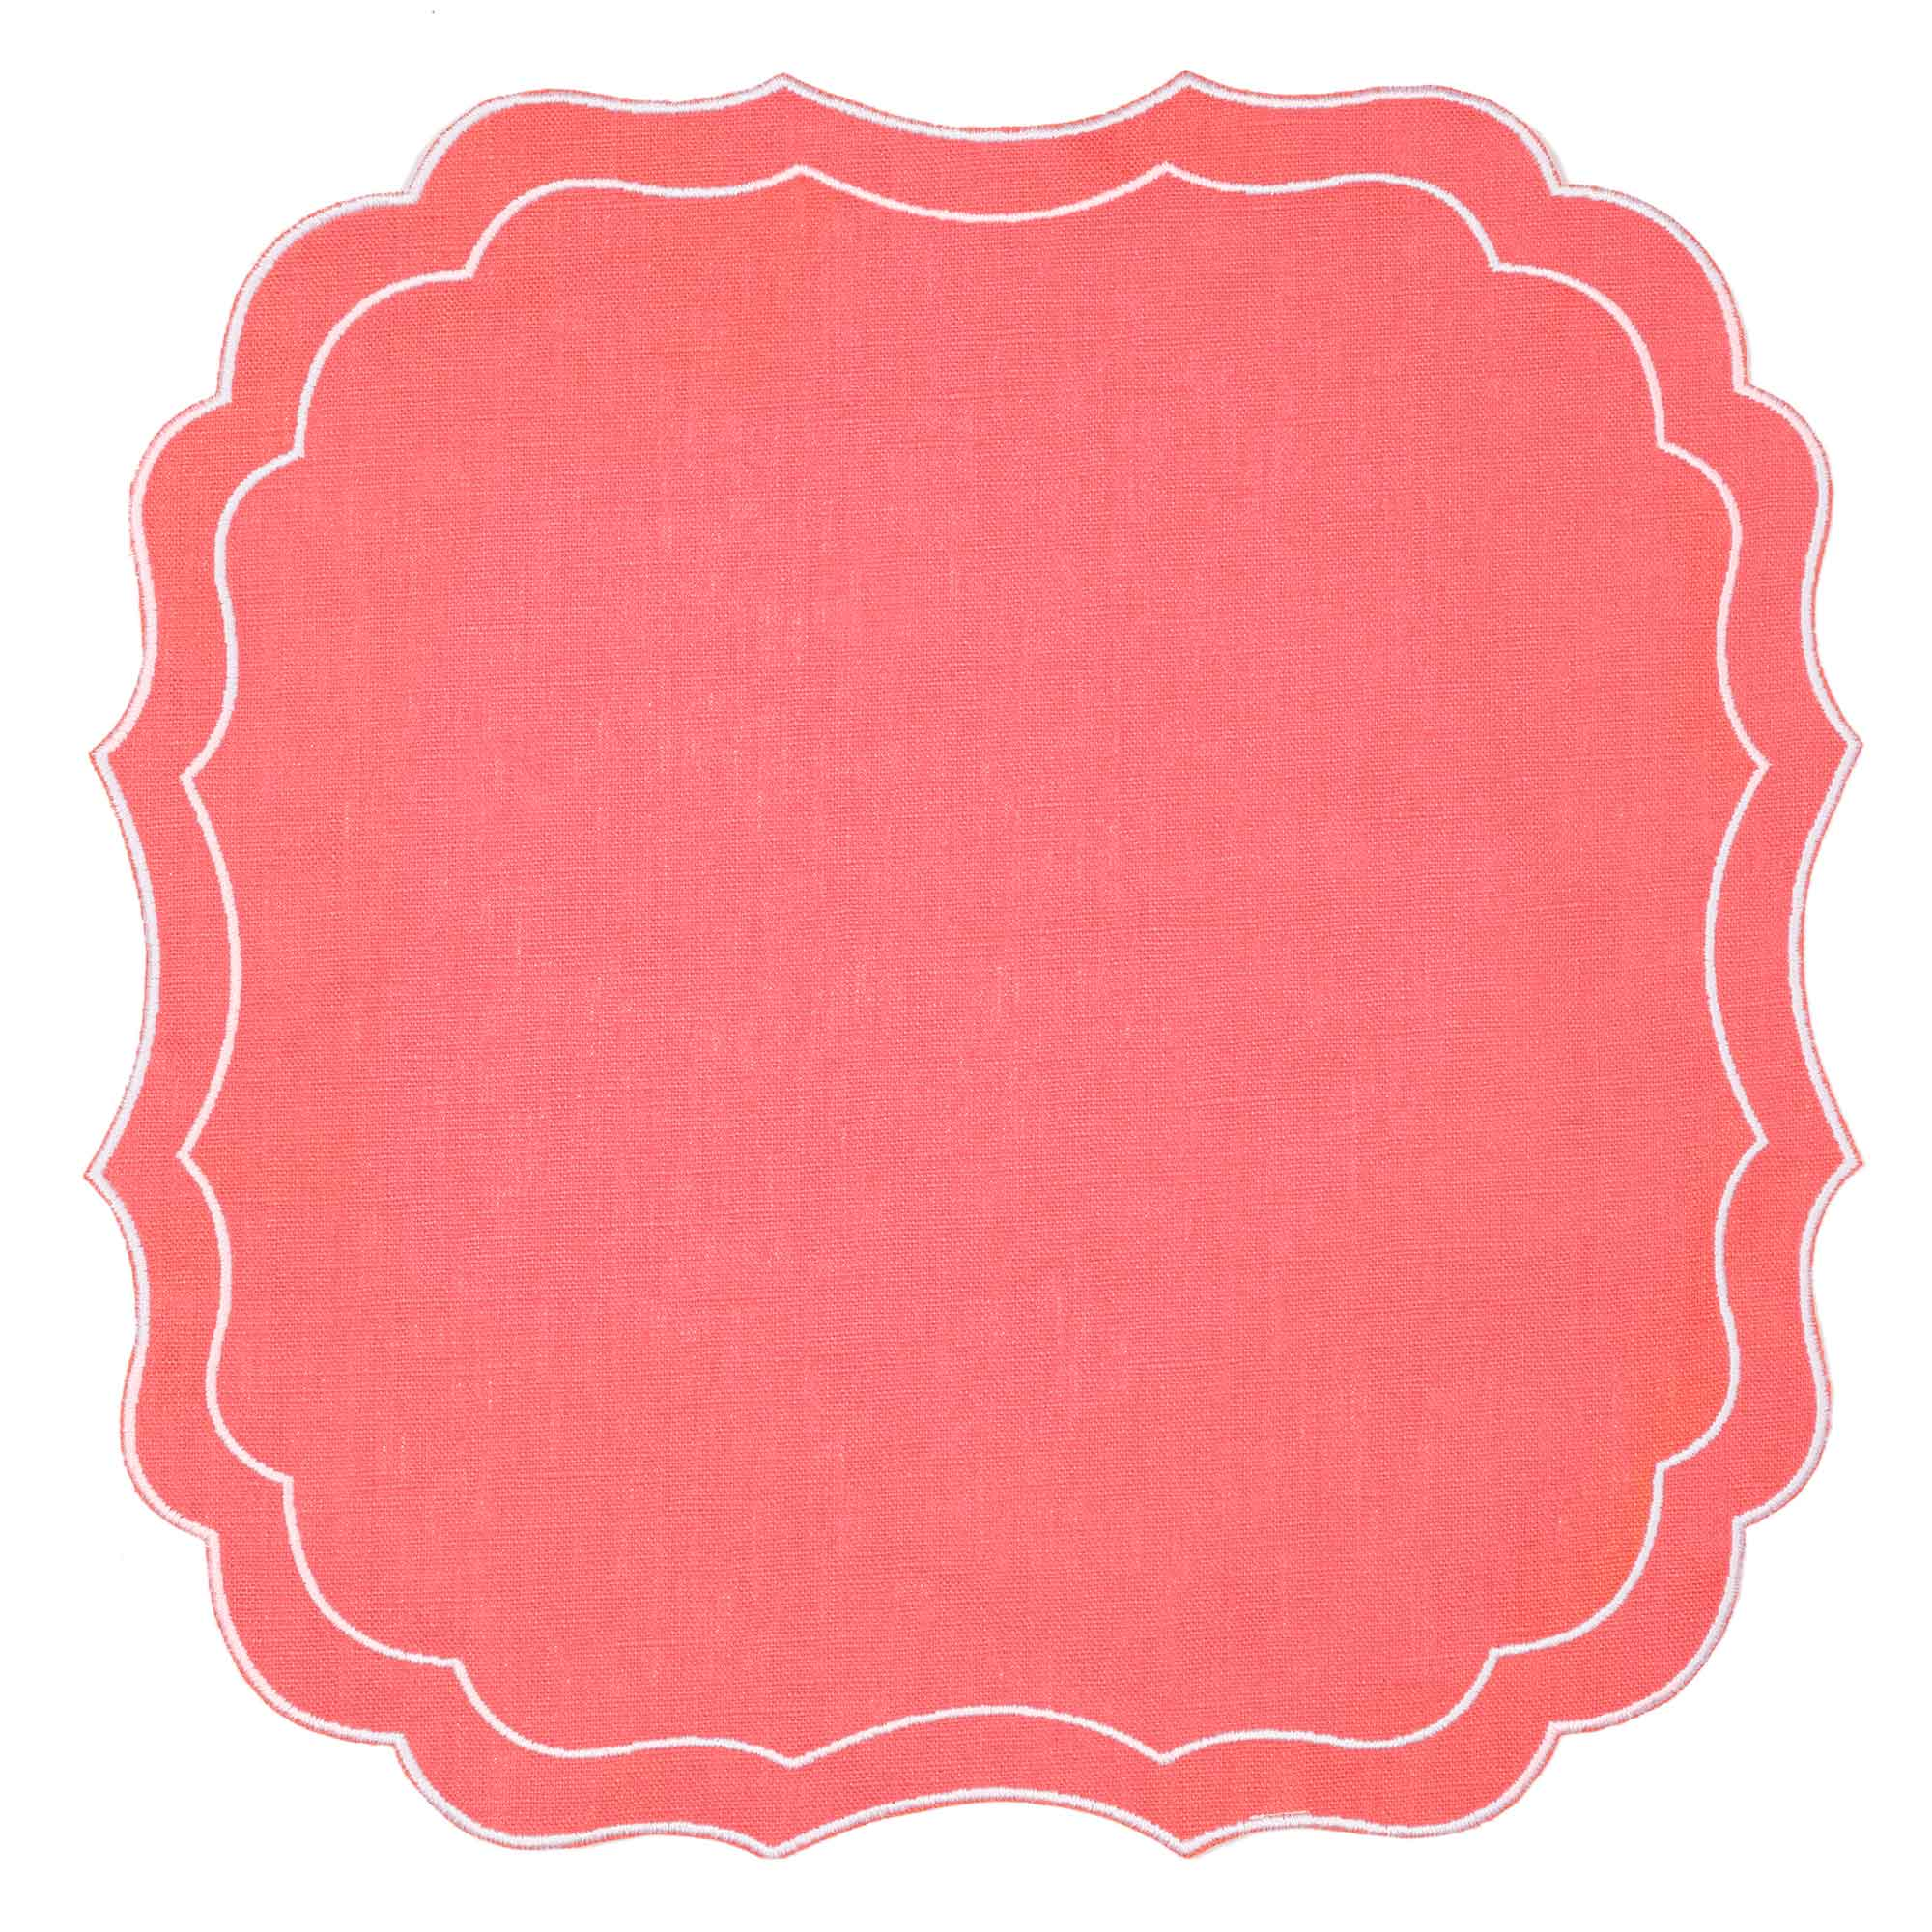 Mull Waxed Italian Linen Placemat - Orange - club matters